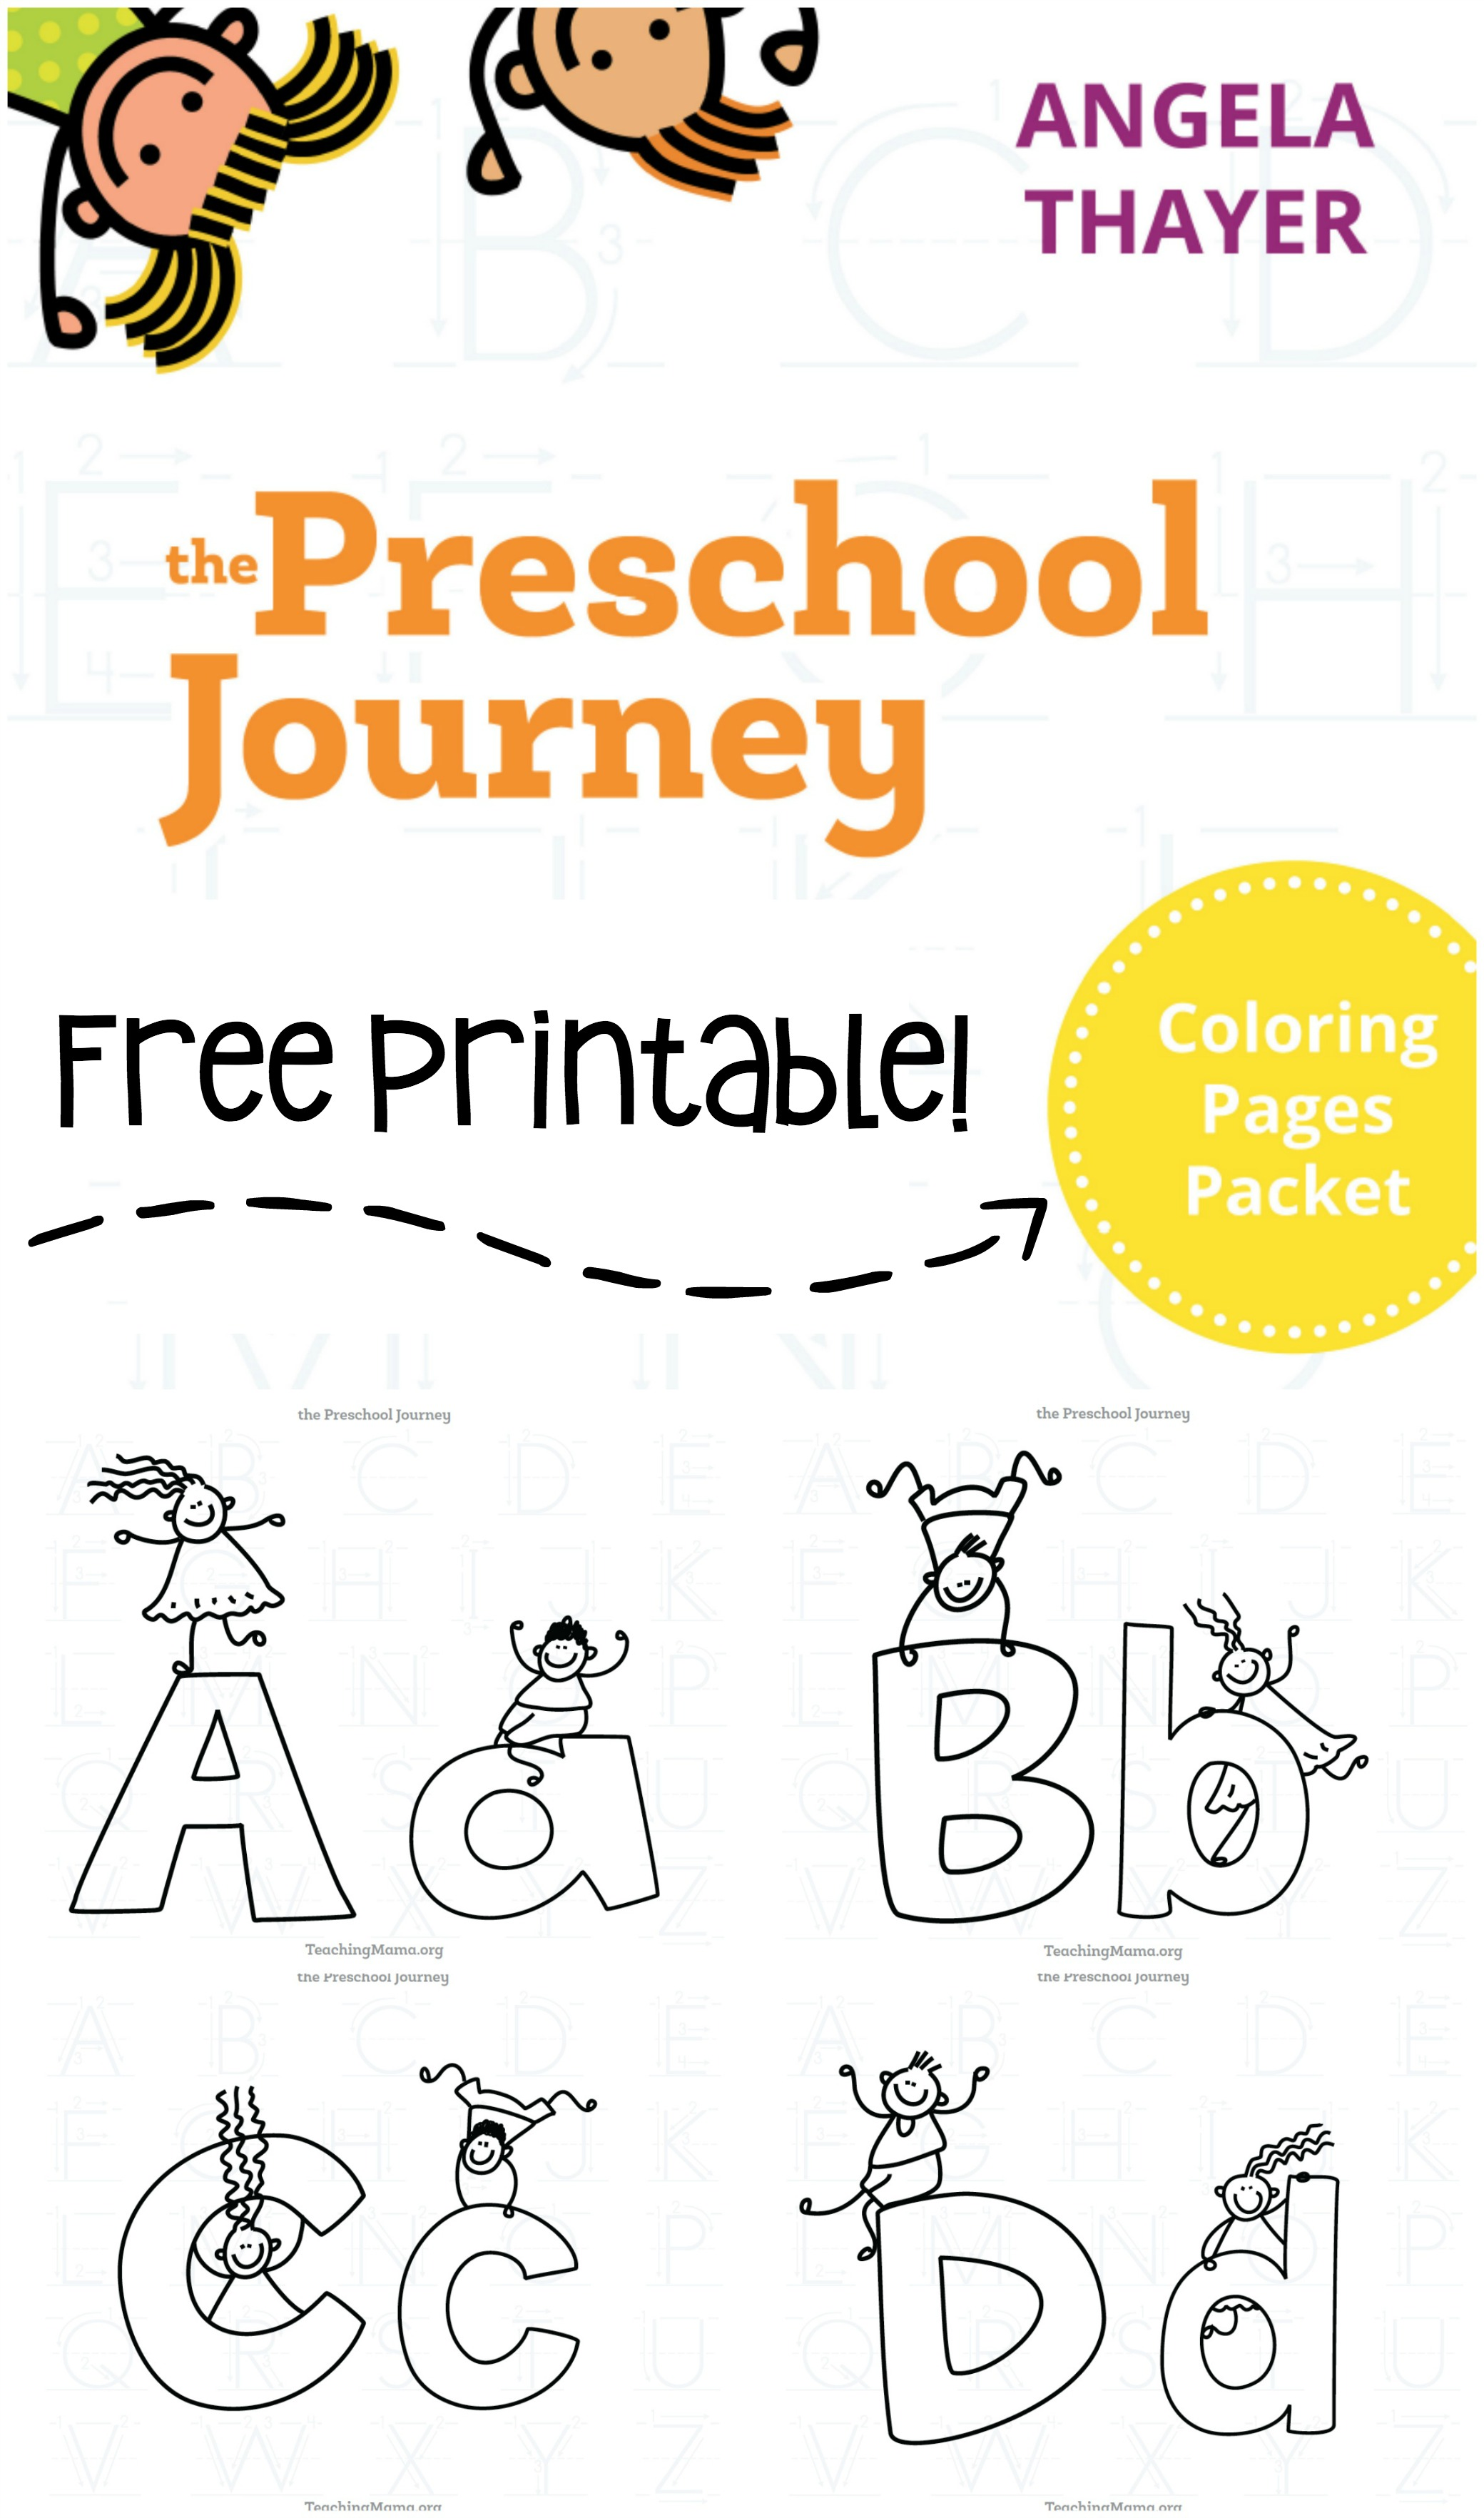 Free Coloring Pages Packet